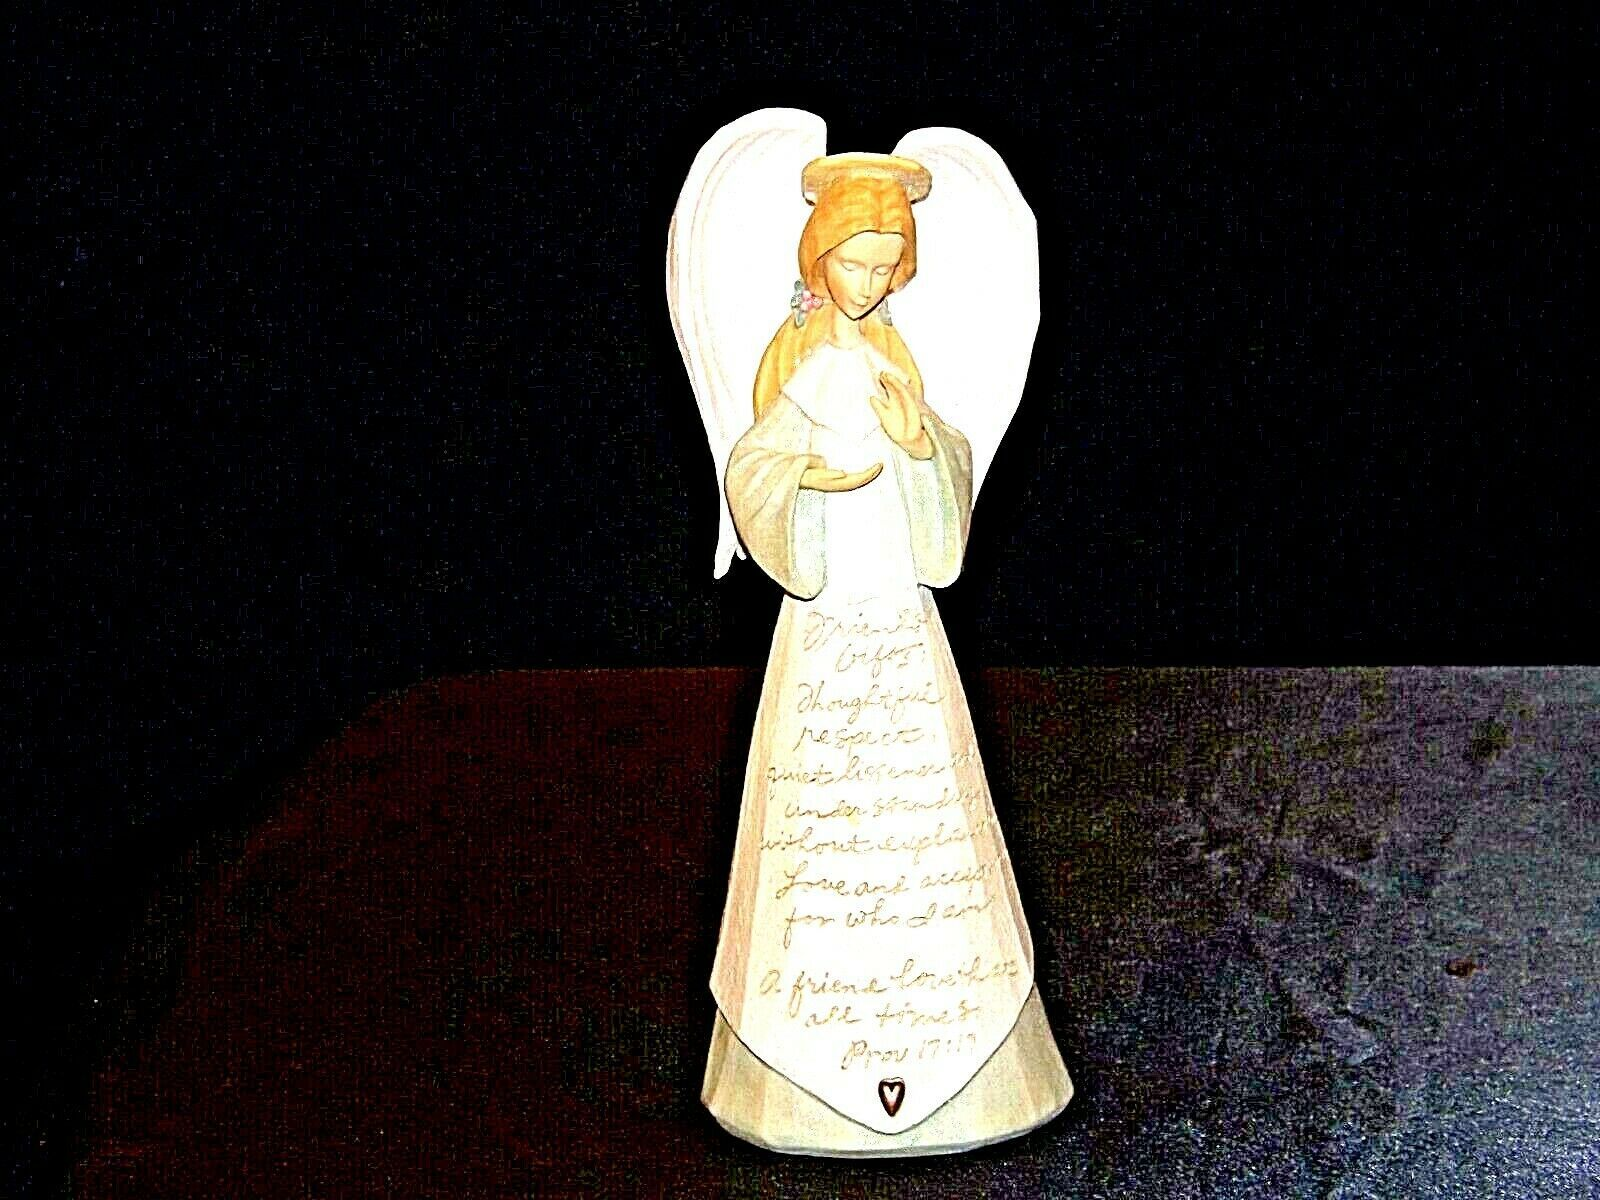 Foundations Angel  A Friend's Gift Enesco AA19-1425 Group Incorporated design by